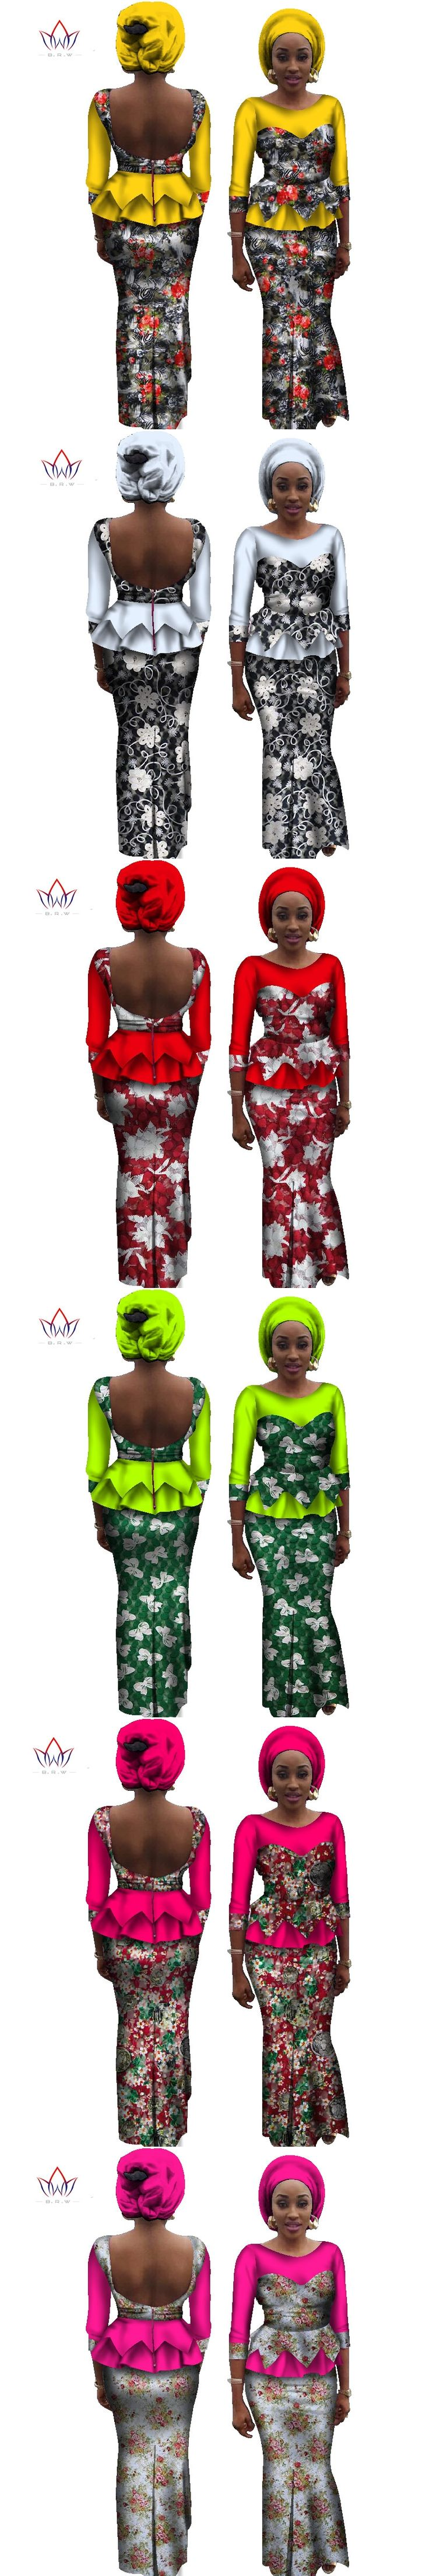 BRW 2017 New Autumn African Sets for Women Bazin Lace Backless Women Sets Dashiki Lace Sexy Traditional African Clothing WY1030